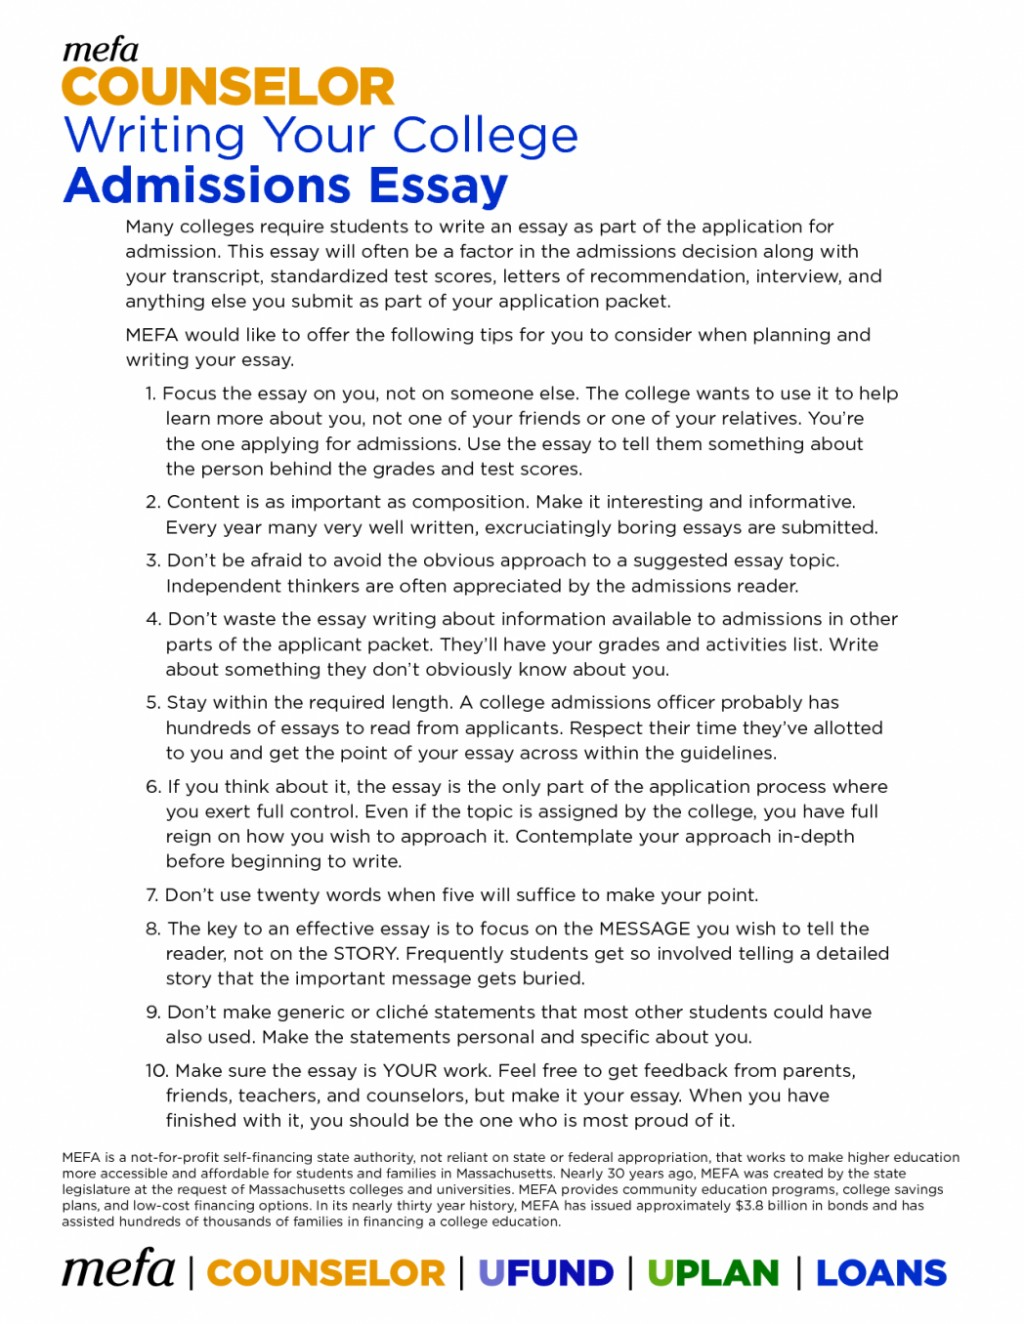 003 Writing Counselling Essay Get Help With Your Business Plan Effective Ppt F4r3a Course Communication Academic For Ielts English Samples Pdf Tips In Hindi 1048x1356 Example Excellent Topics Questions Guidance And Large